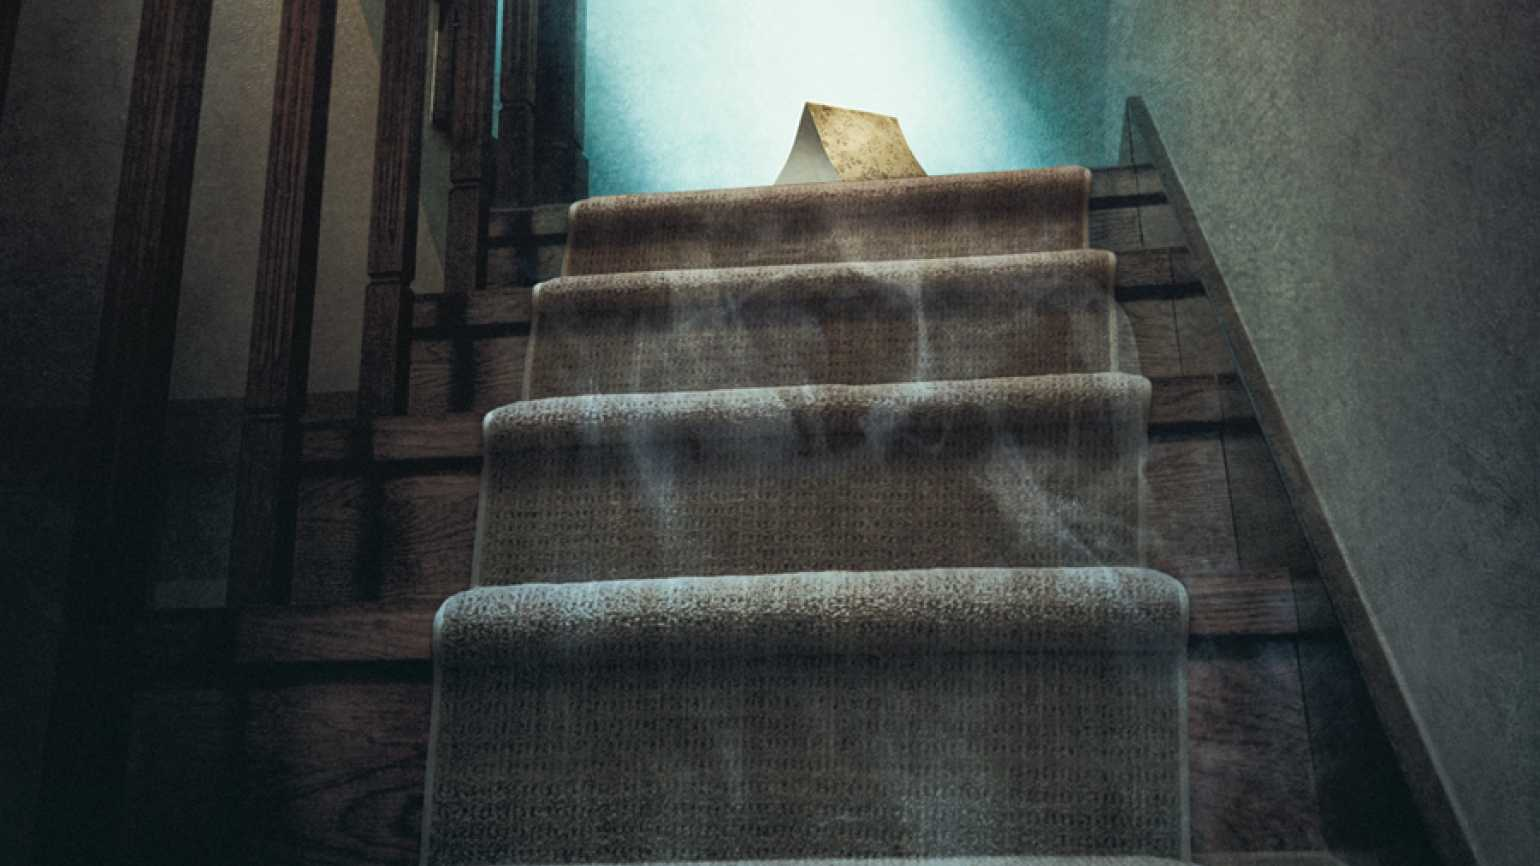 An artist's rendering of a greeting card at the top of a flight of stairs